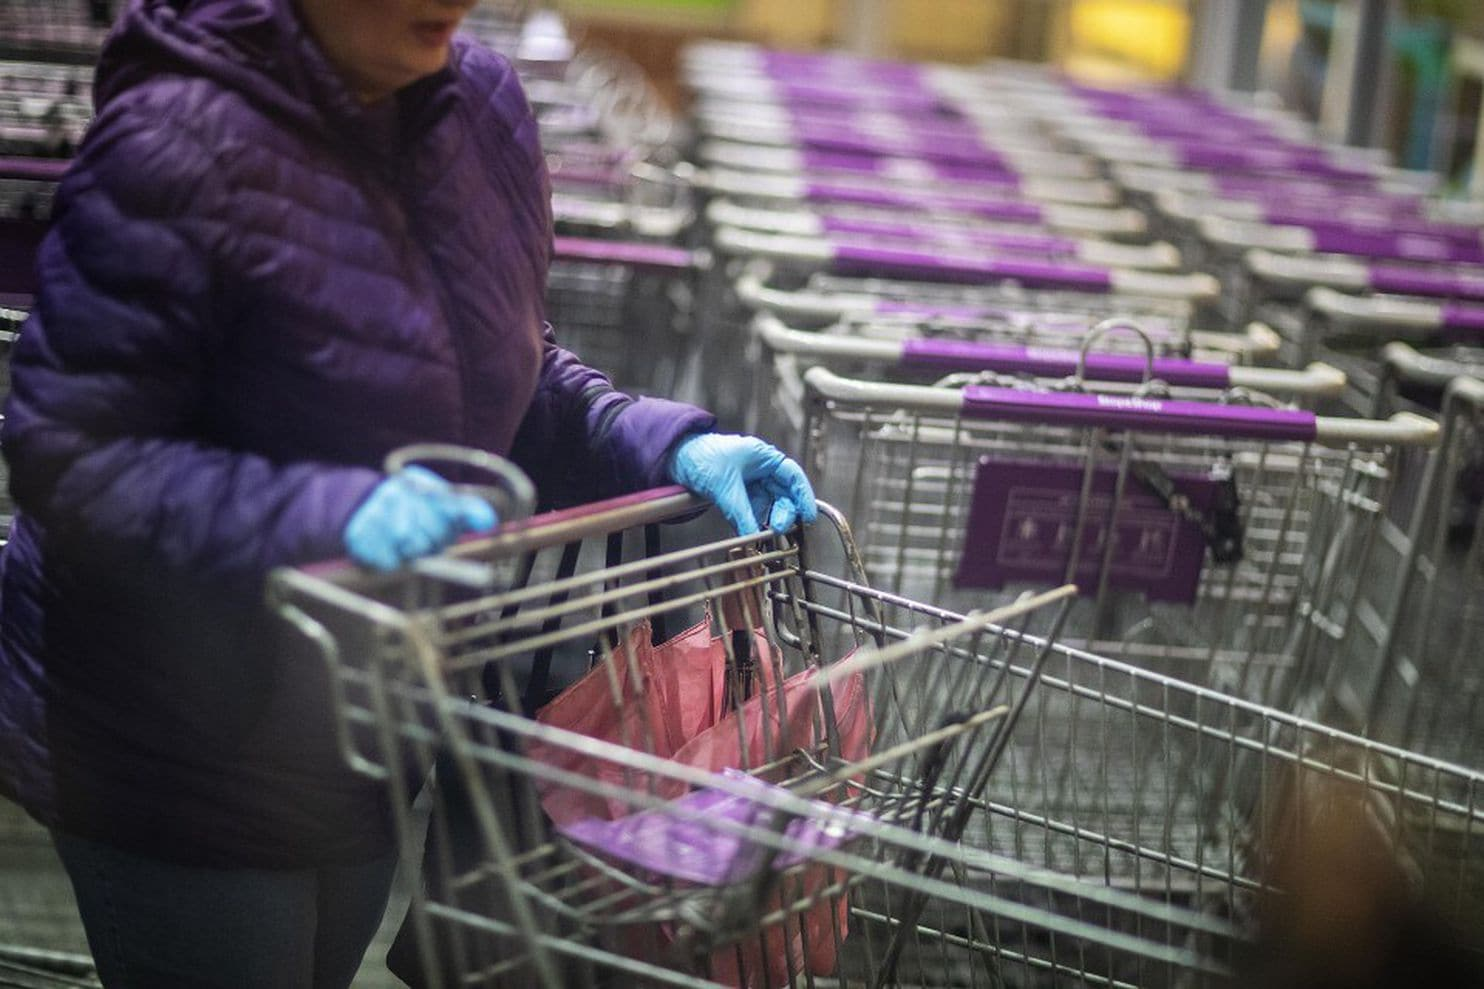 grocery shopping tips during the coronavirus